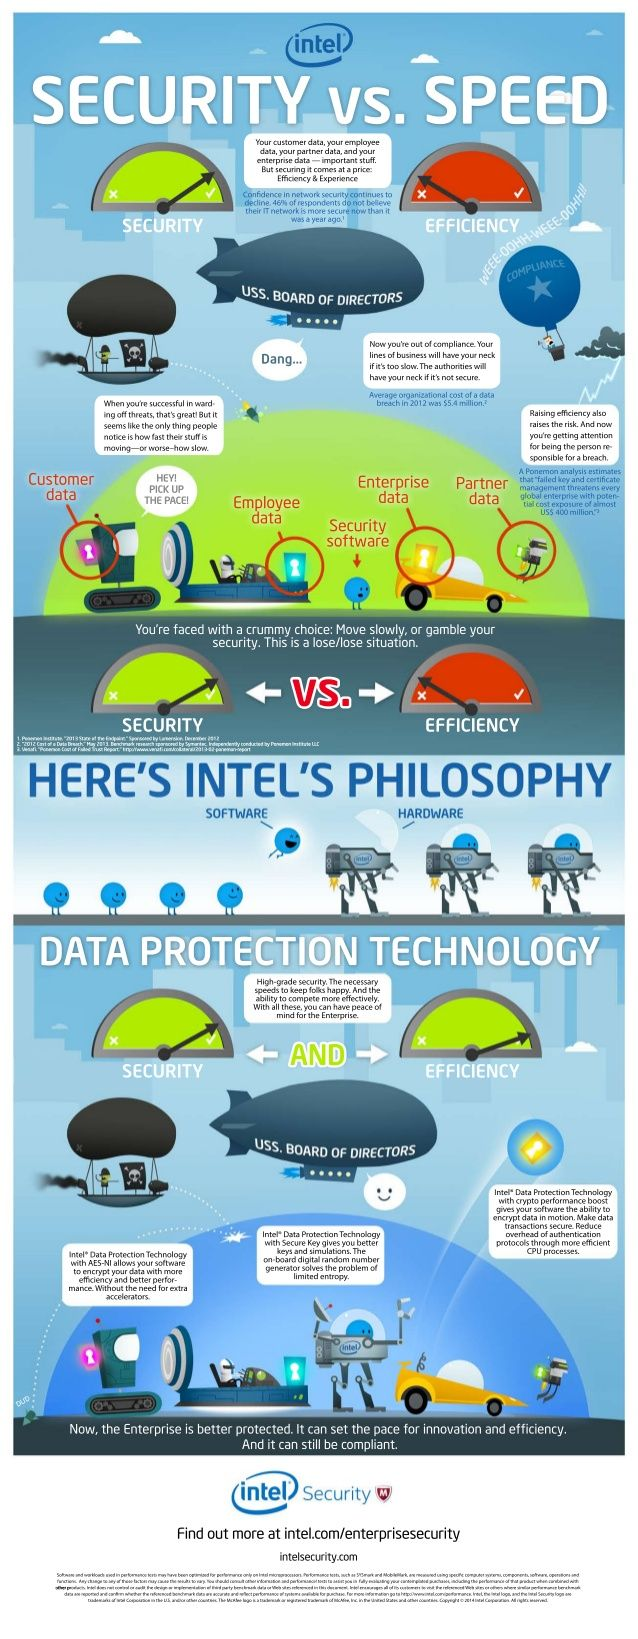 How Intel Security Protects Enterprise Data - Infographic by Intel IT Center via slideshare